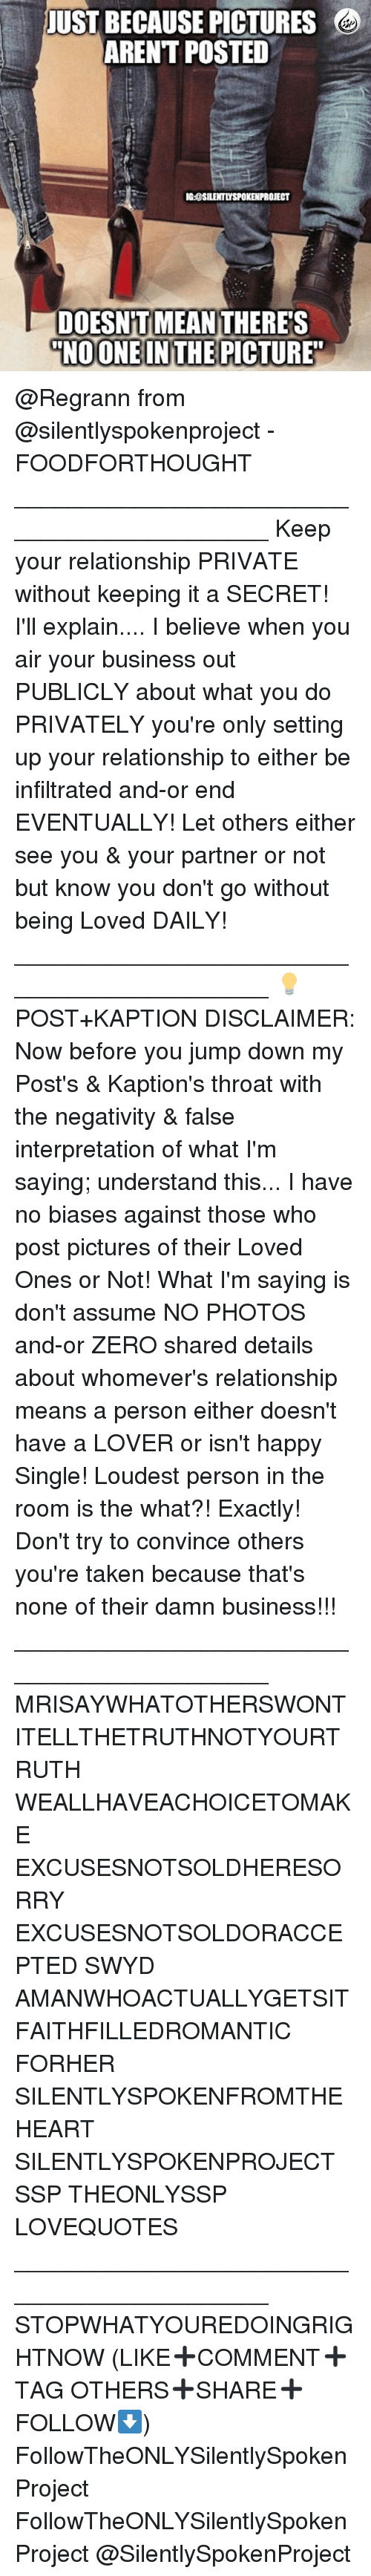 zeroes: JUST BECAUSE PICTURES  ARENT POSTED  IGOSILENTLYSPOKENPROJECT  DOESN'T MEAN  DOESN'T MEANTHERES  NOONE INTHE PICTURE @Regrann from @silentlyspokenproject - FOODFORTHOUGHT ____________________________________________ Keep your relationship PRIVATE without keeping it a SECRET! I'll explain.... I believe when you air your business out PUBLICLY about what you do PRIVATELY you're only setting up your relationship to either be infiltrated and-or end EVENTUALLY! Let others either see you & your partner or not but know you don't go without being Loved DAILY! ____________________________________________ 💡POST+KAPTION DISCLAIMER: Now before you jump down my Post's & Kaption's throat with the negativity & false interpretation of what I'm saying; understand this... I have no biases against those who post pictures of their Loved Ones or Not! What I'm saying is don't assume NO PHOTOS and-or ZERO shared details about whomever's relationship means a person either doesn't have a LOVER or isn't happy Single! Loudest person in the room is the what?! Exactly! Don't try to convince others you're taken because that's none of their damn business!!! ____________________________________________ MRISAYWHATOTHERSWONT ITELLTHETRUTHNOTYOURTRUTH WEALLHAVEACHOICETOMAKE EXCUSESNOTSOLDHERESORRY EXCUSESNOTSOLDORACCEPTED SWYD AMANWHOACTUALLYGETSIT FAITHFILLEDROMANTIC FORHER SILENTLYSPOKENFROMTHEHEART SILENTLYSPOKENPROJECT SSP THEONLYSSP LOVEQUOTES ____________________________________________ STOPWHATYOUREDOINGRIGHTNOW (LIKE➕COMMENT➕TAG OTHERS➕SHARE➕FOLLOW⬇️) FollowTheONLYSilentlySpokenProject FollowTheONLYSilentlySpokenProject @SilentlySpokenProject